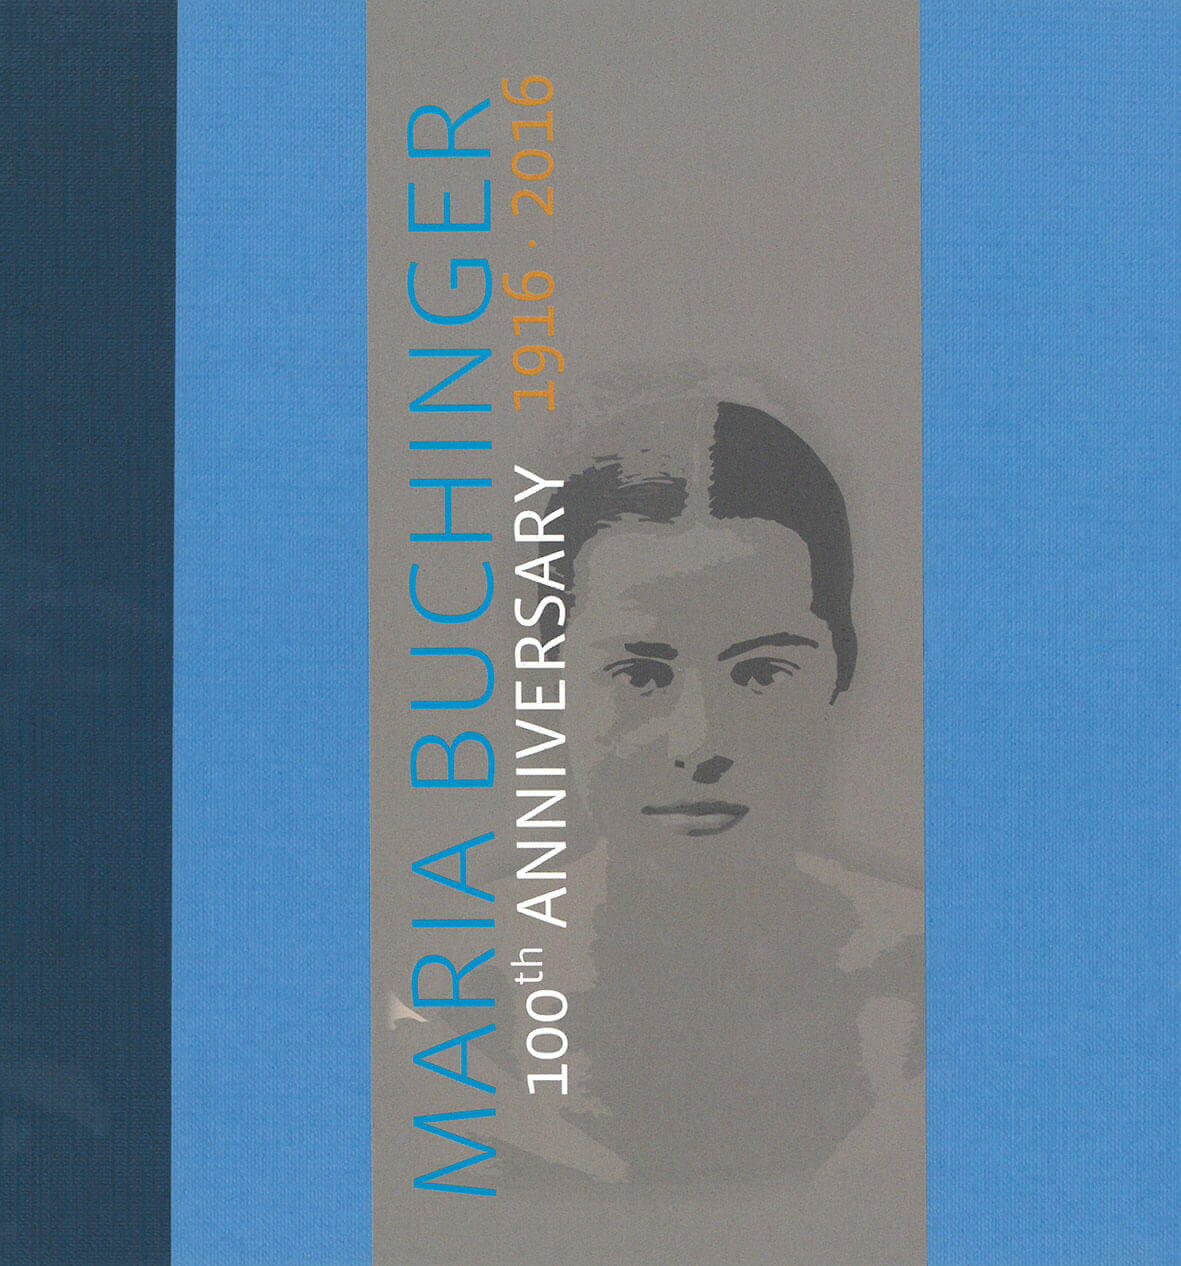 Buchinger Wilhelmi, Fasten, Heilfasten, Fasting, Health, Integrative Medicine, Maria Buchinger, 100th Anniversary, Science, Wissenschaft